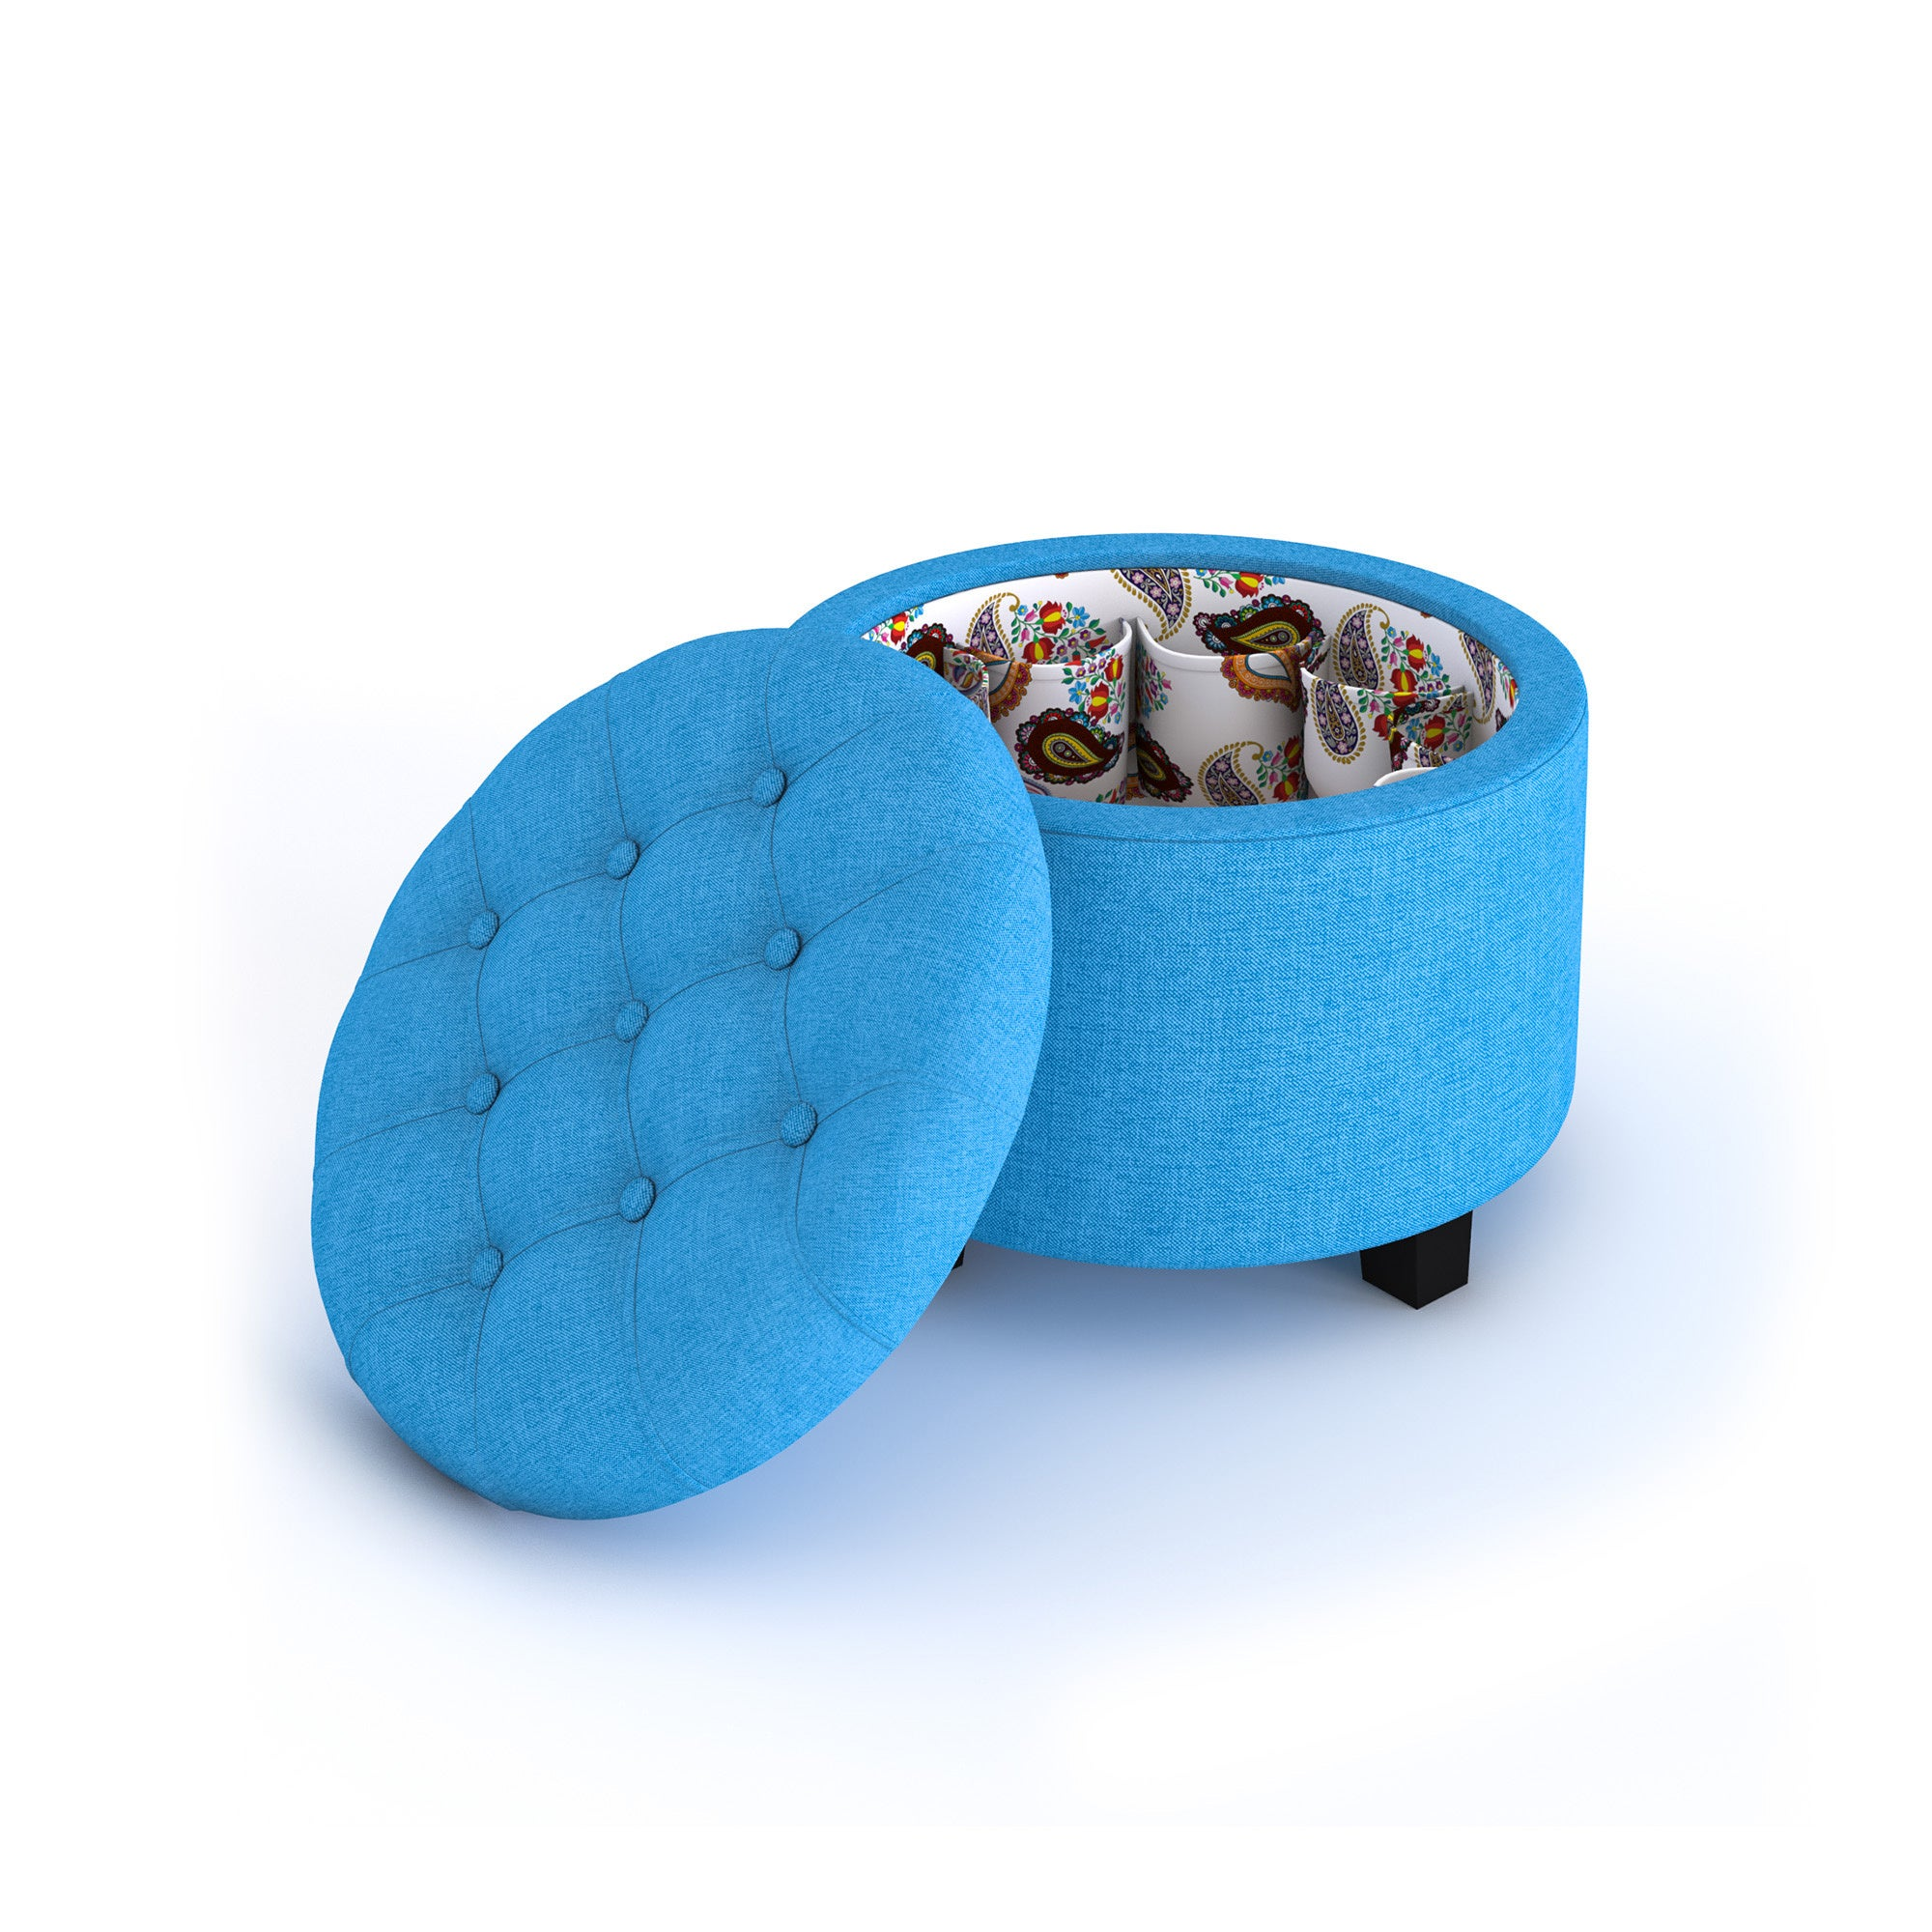 Carytown Parkwood Round Ottoman with Shoe Holder Insert